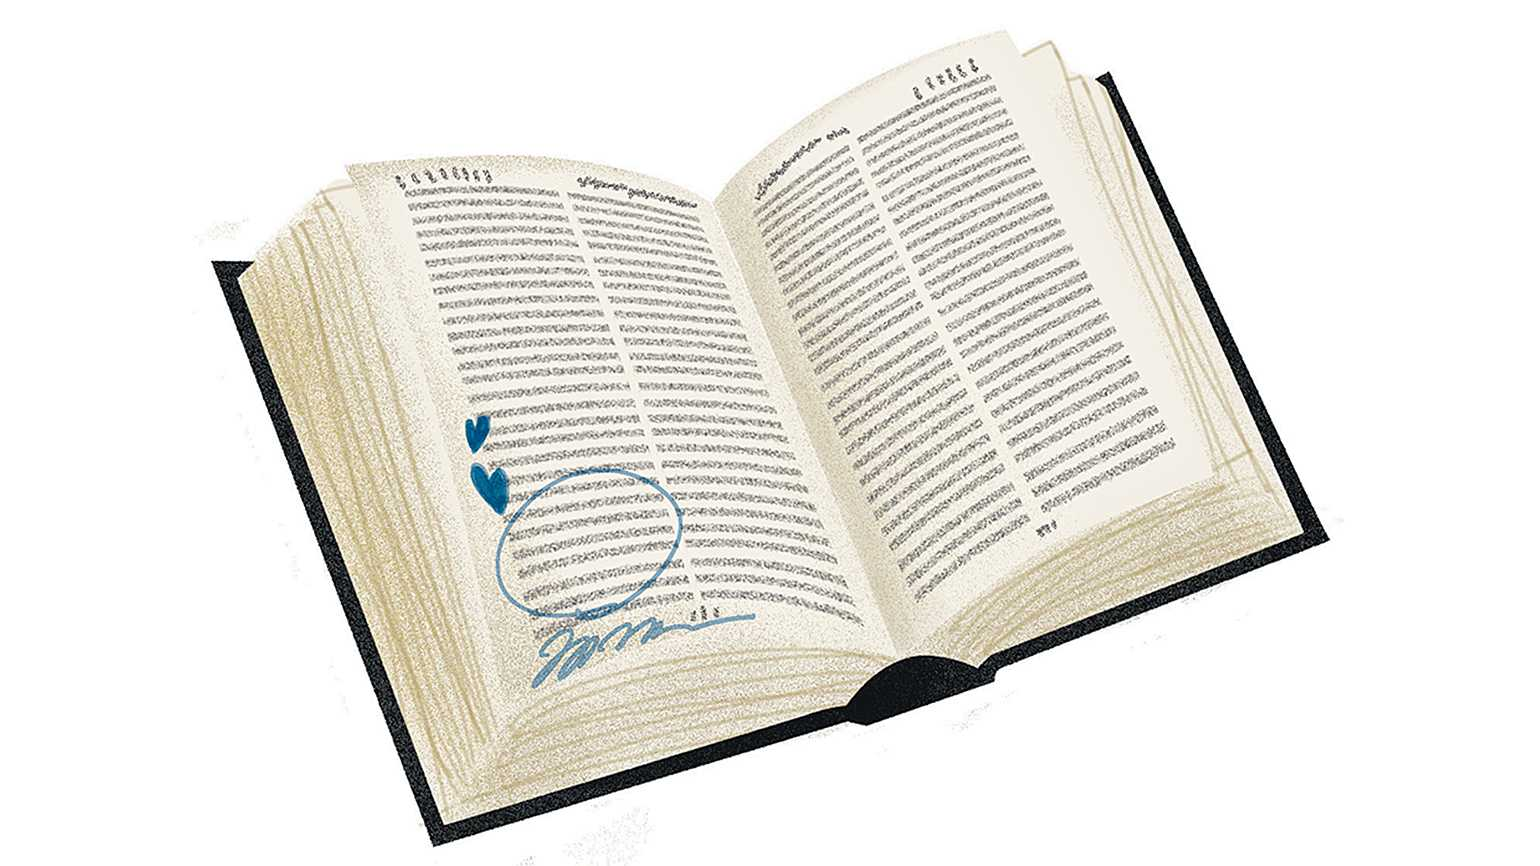 An artists rendering of an open Bible with a verse highlighted